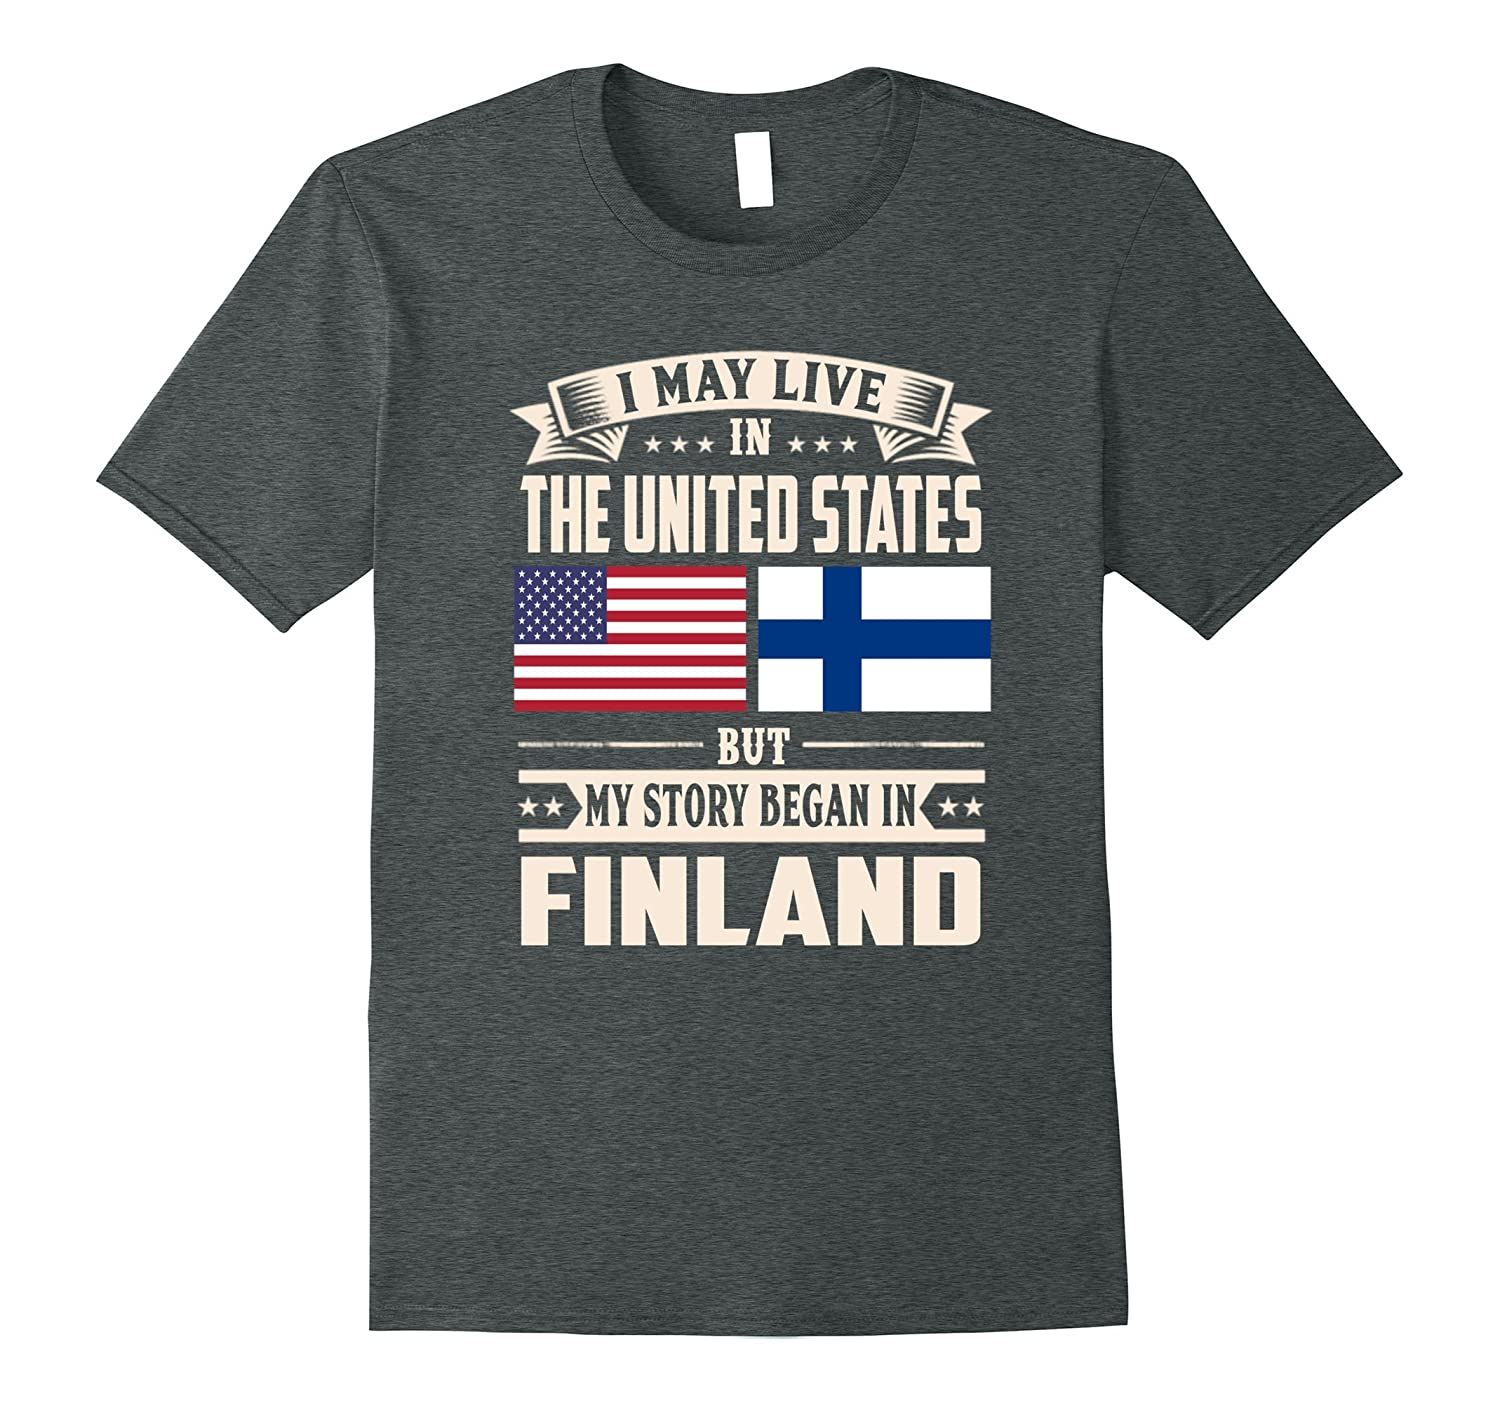 Finland lovers in usa shirt